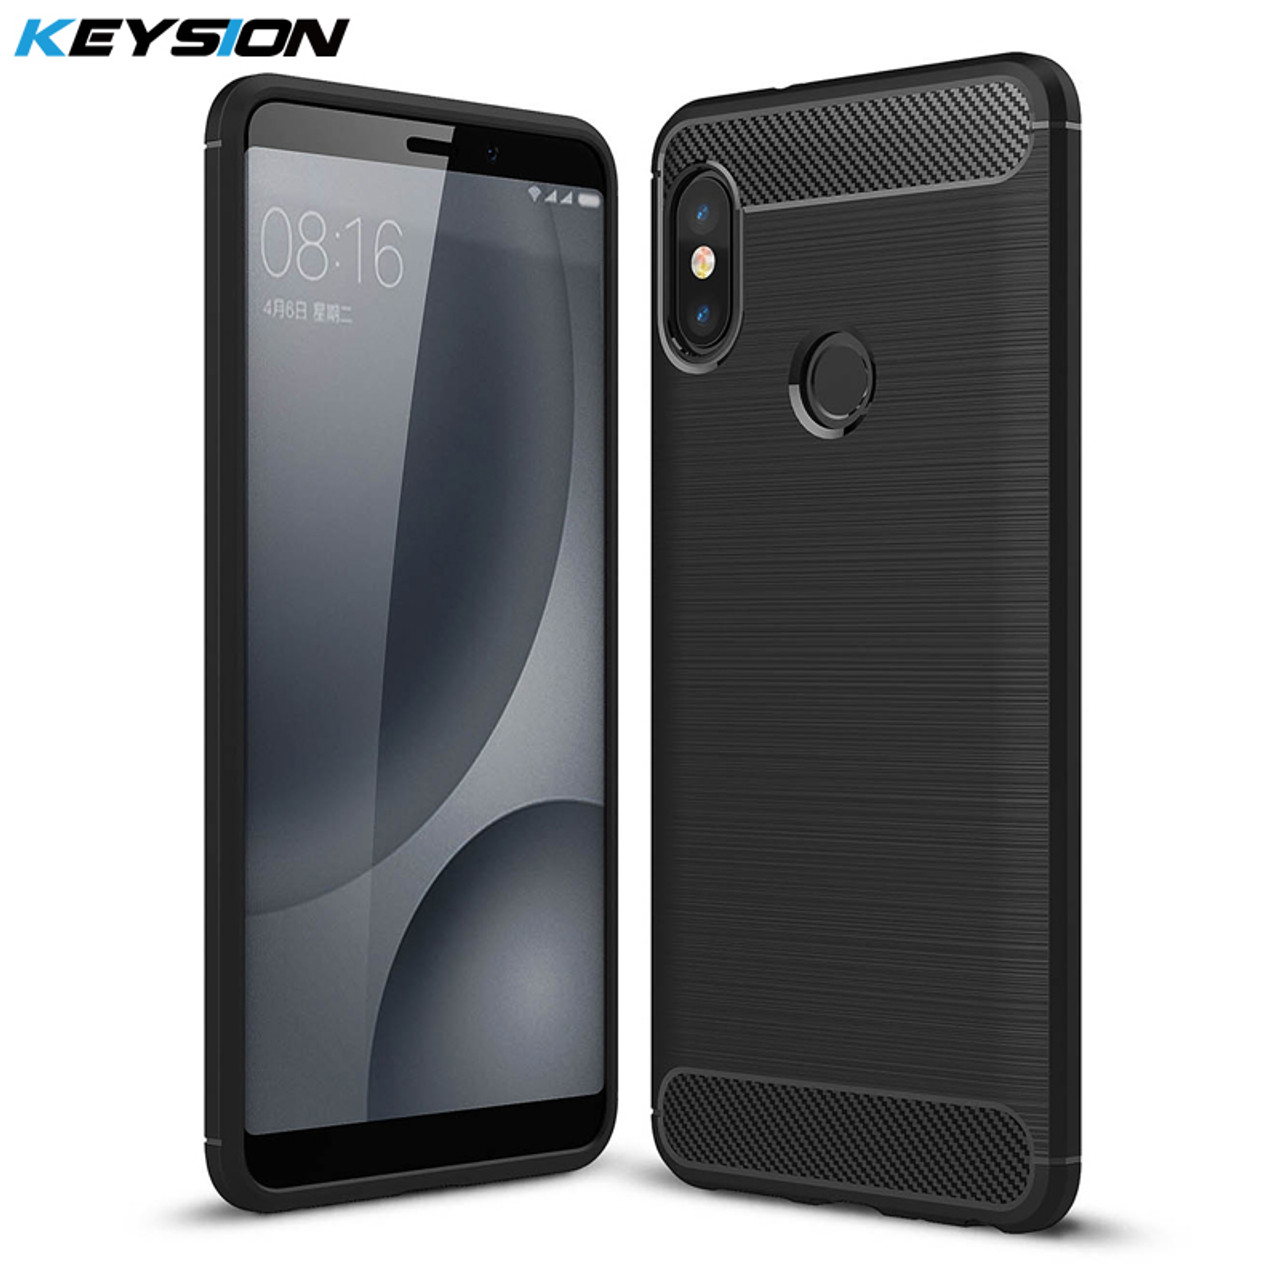 separation shoes cde4c 4957c KEYSION Case For Xiaomi Redmi Note 5 Pro 4 4X 3 Brushed Armor Shockproof  Soft TPU Cover for Xiaomi Mi 8 6 5 Mix 2 2s Mi A1 A2 6X